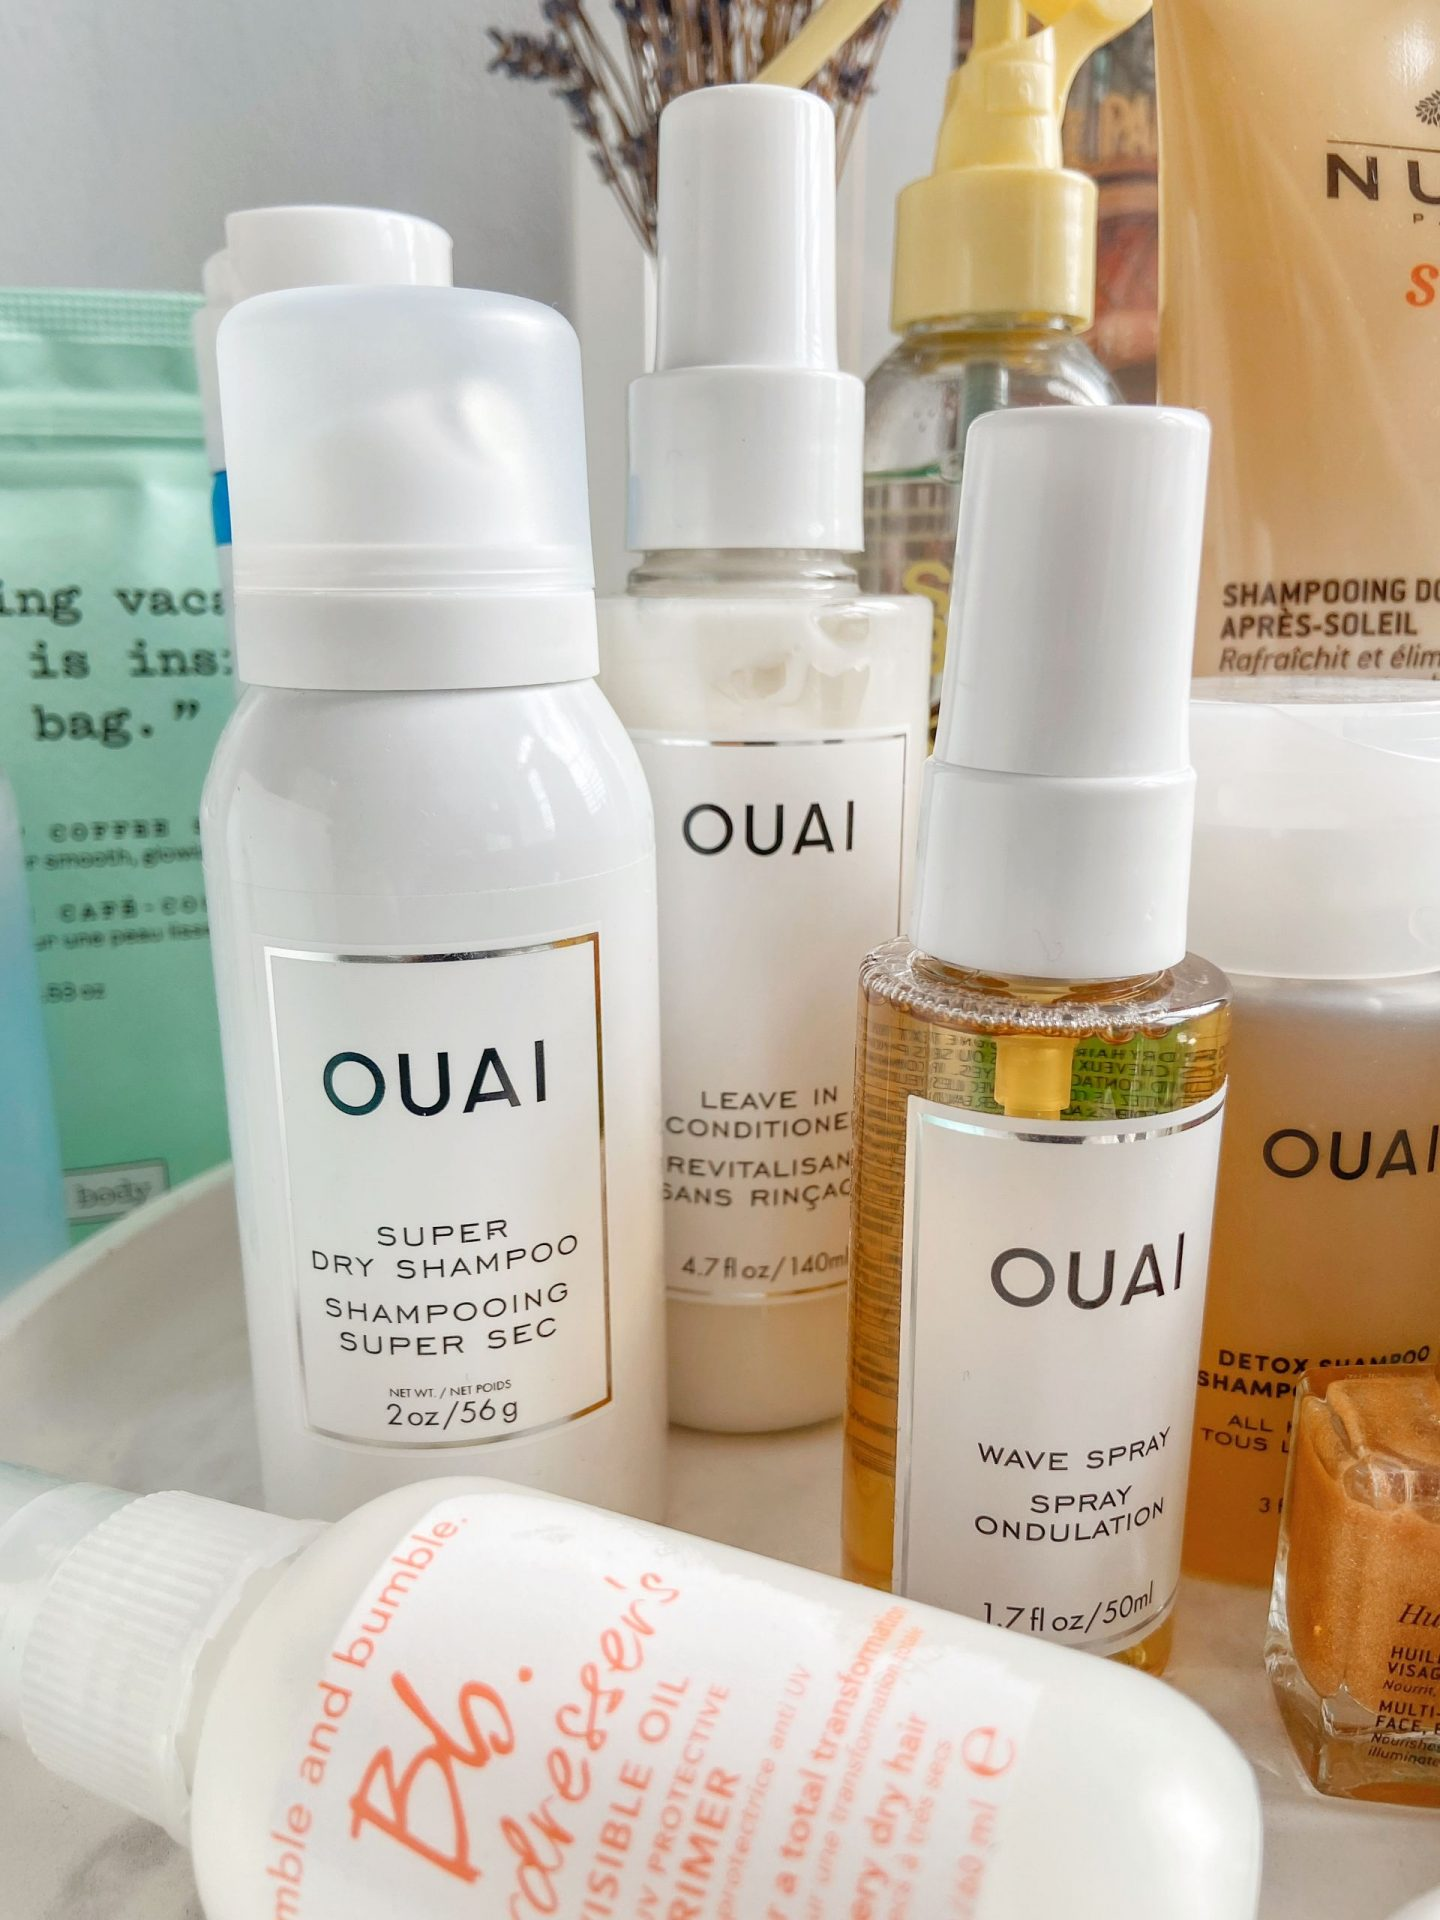 Ouai Hair Care Products Travel Kit